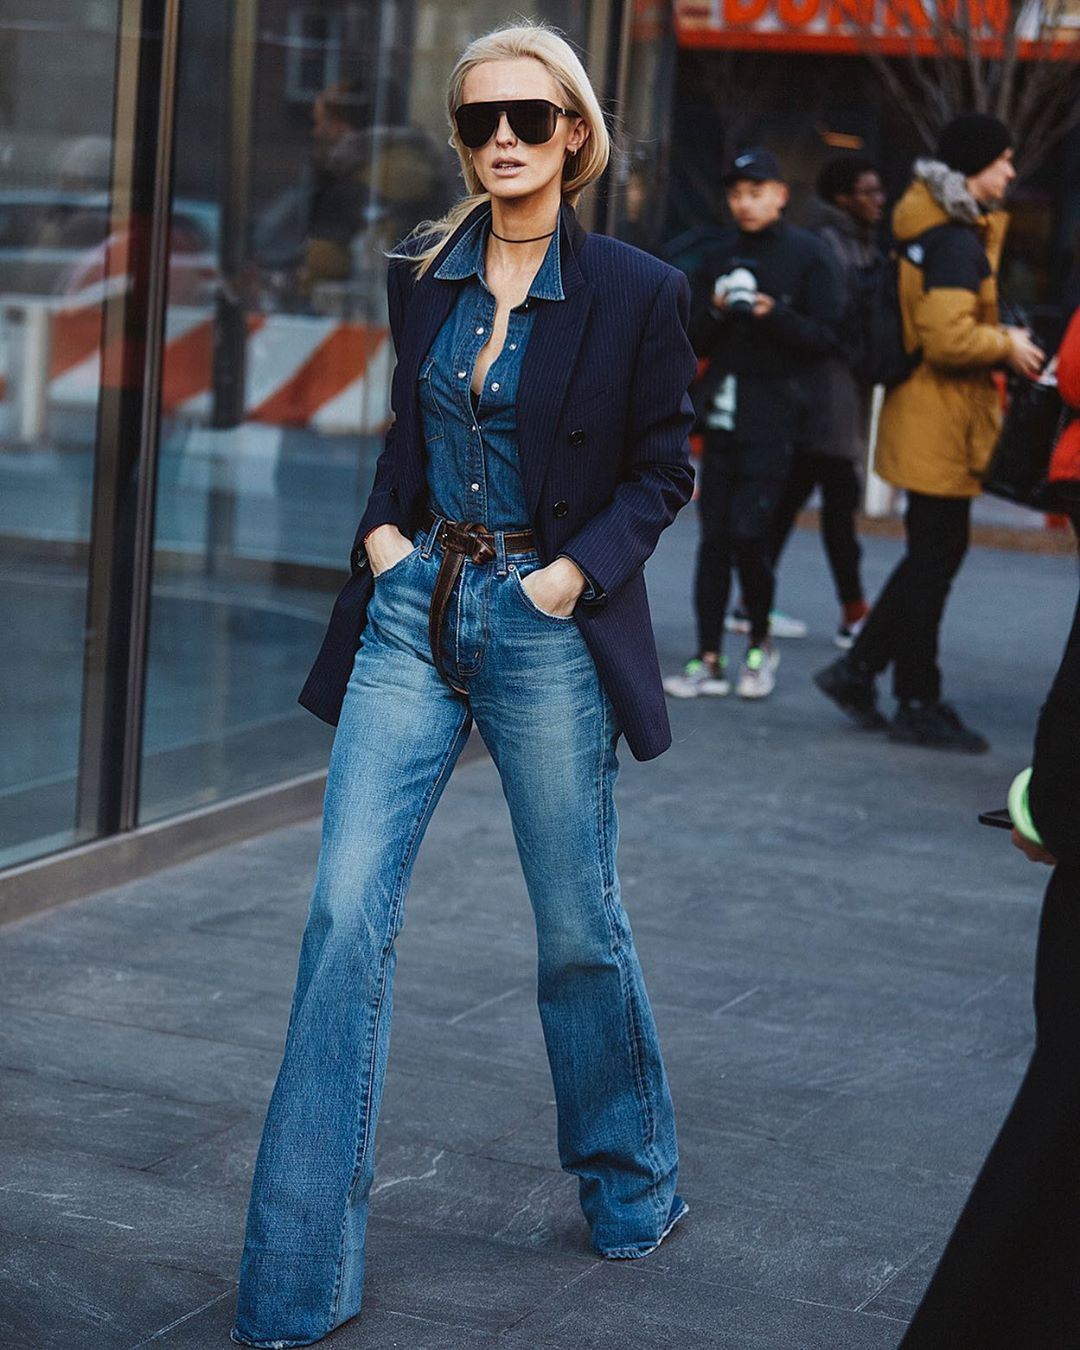 Stretch Denim jacket with boot-cut jeans